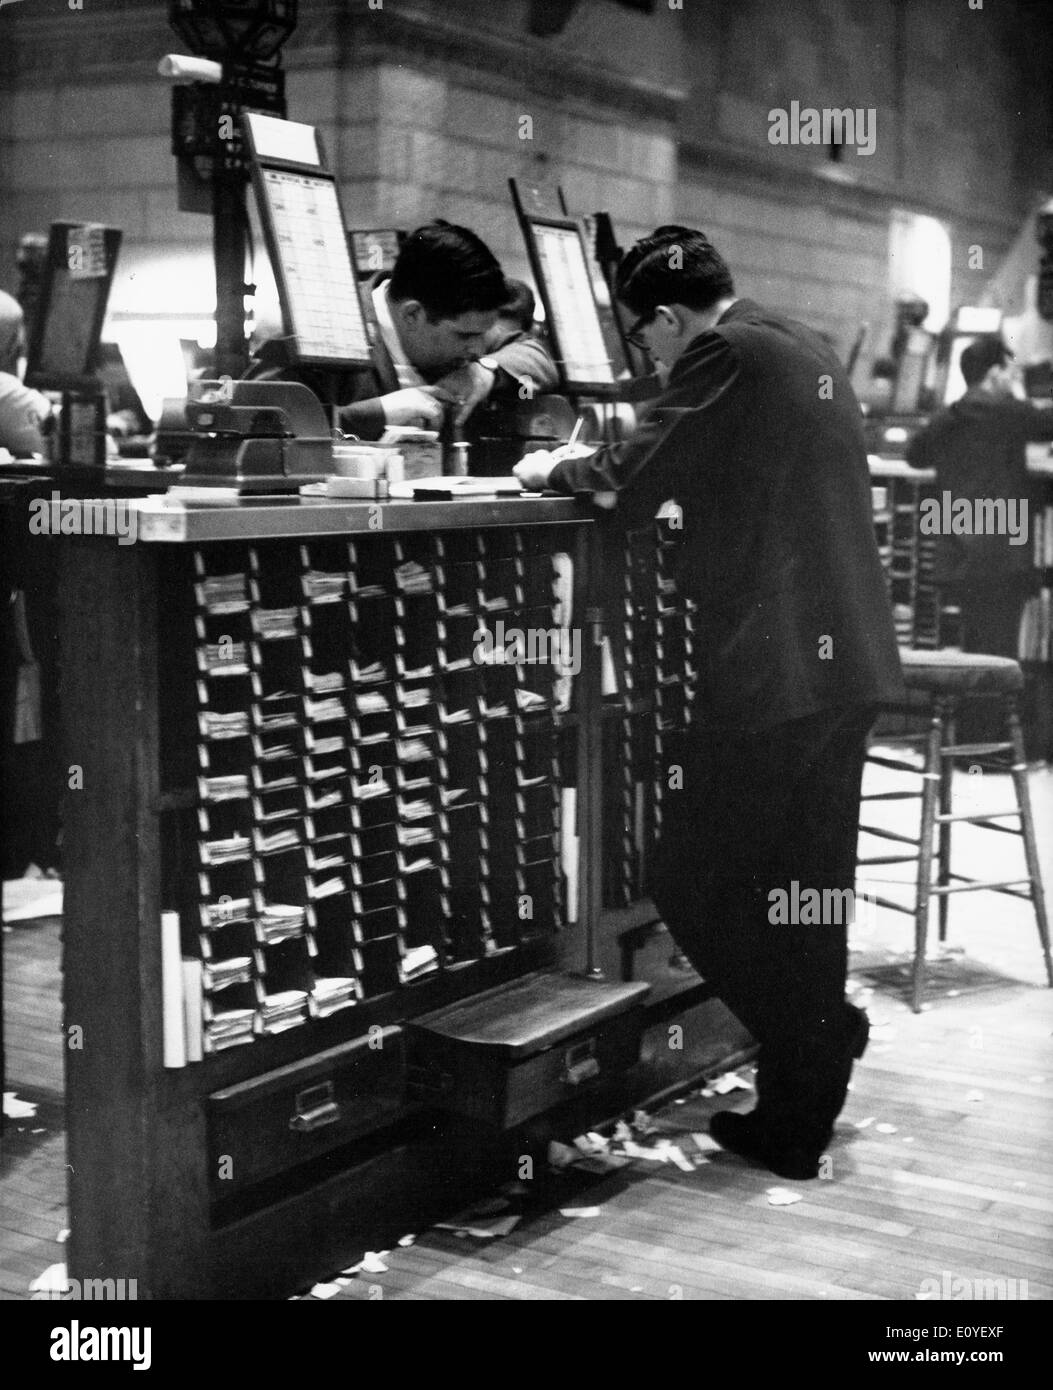 Jan. 01, 1970 - New York, New York, U.S. - File Photo: circa 1970s. Trading post in the Stock Exchange as business wanes and the floor's covering of slips grows. - Stock Image